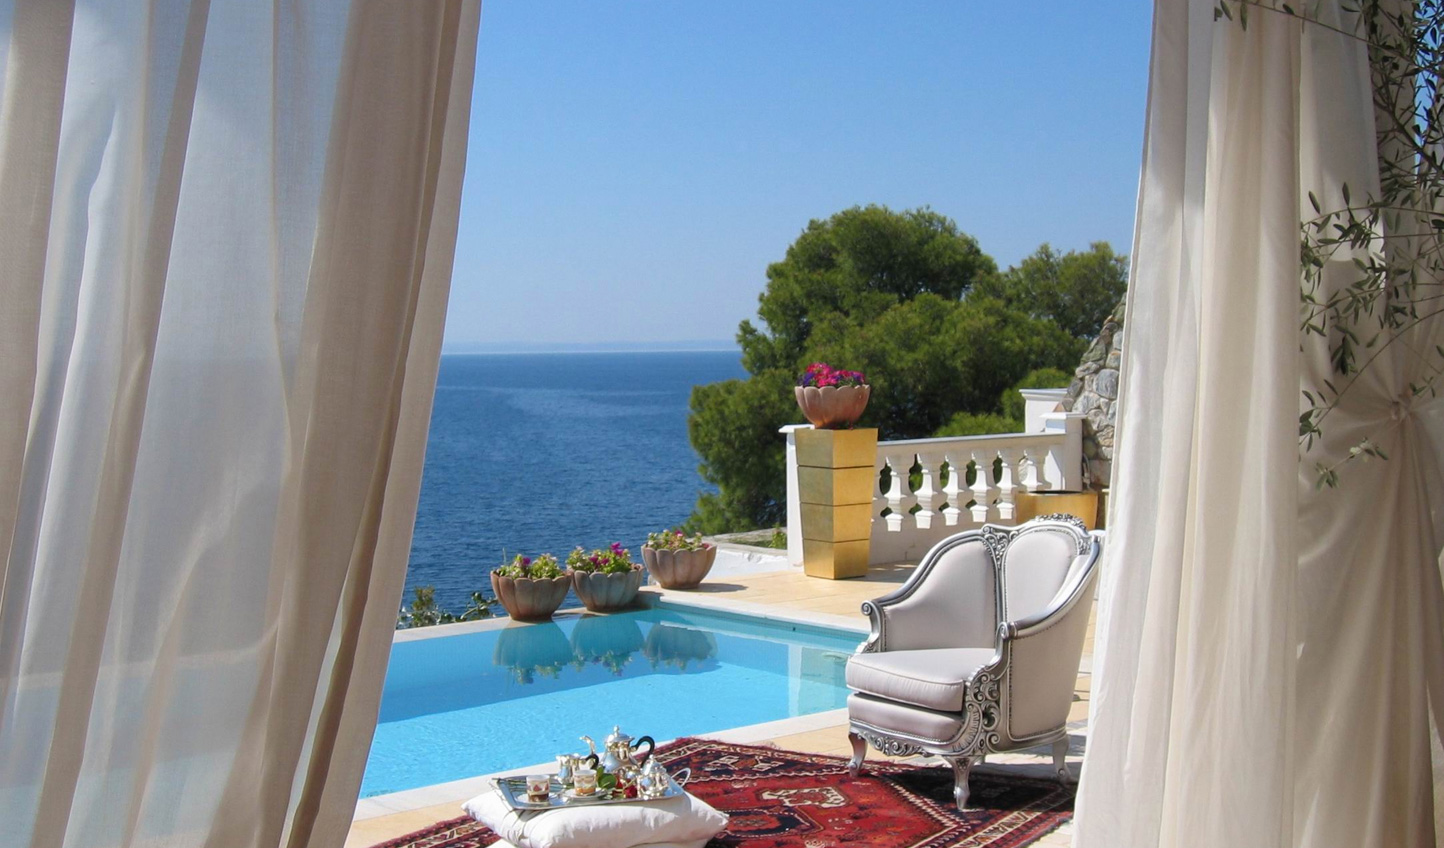 Dive on in to your private pool overlooking the sea below